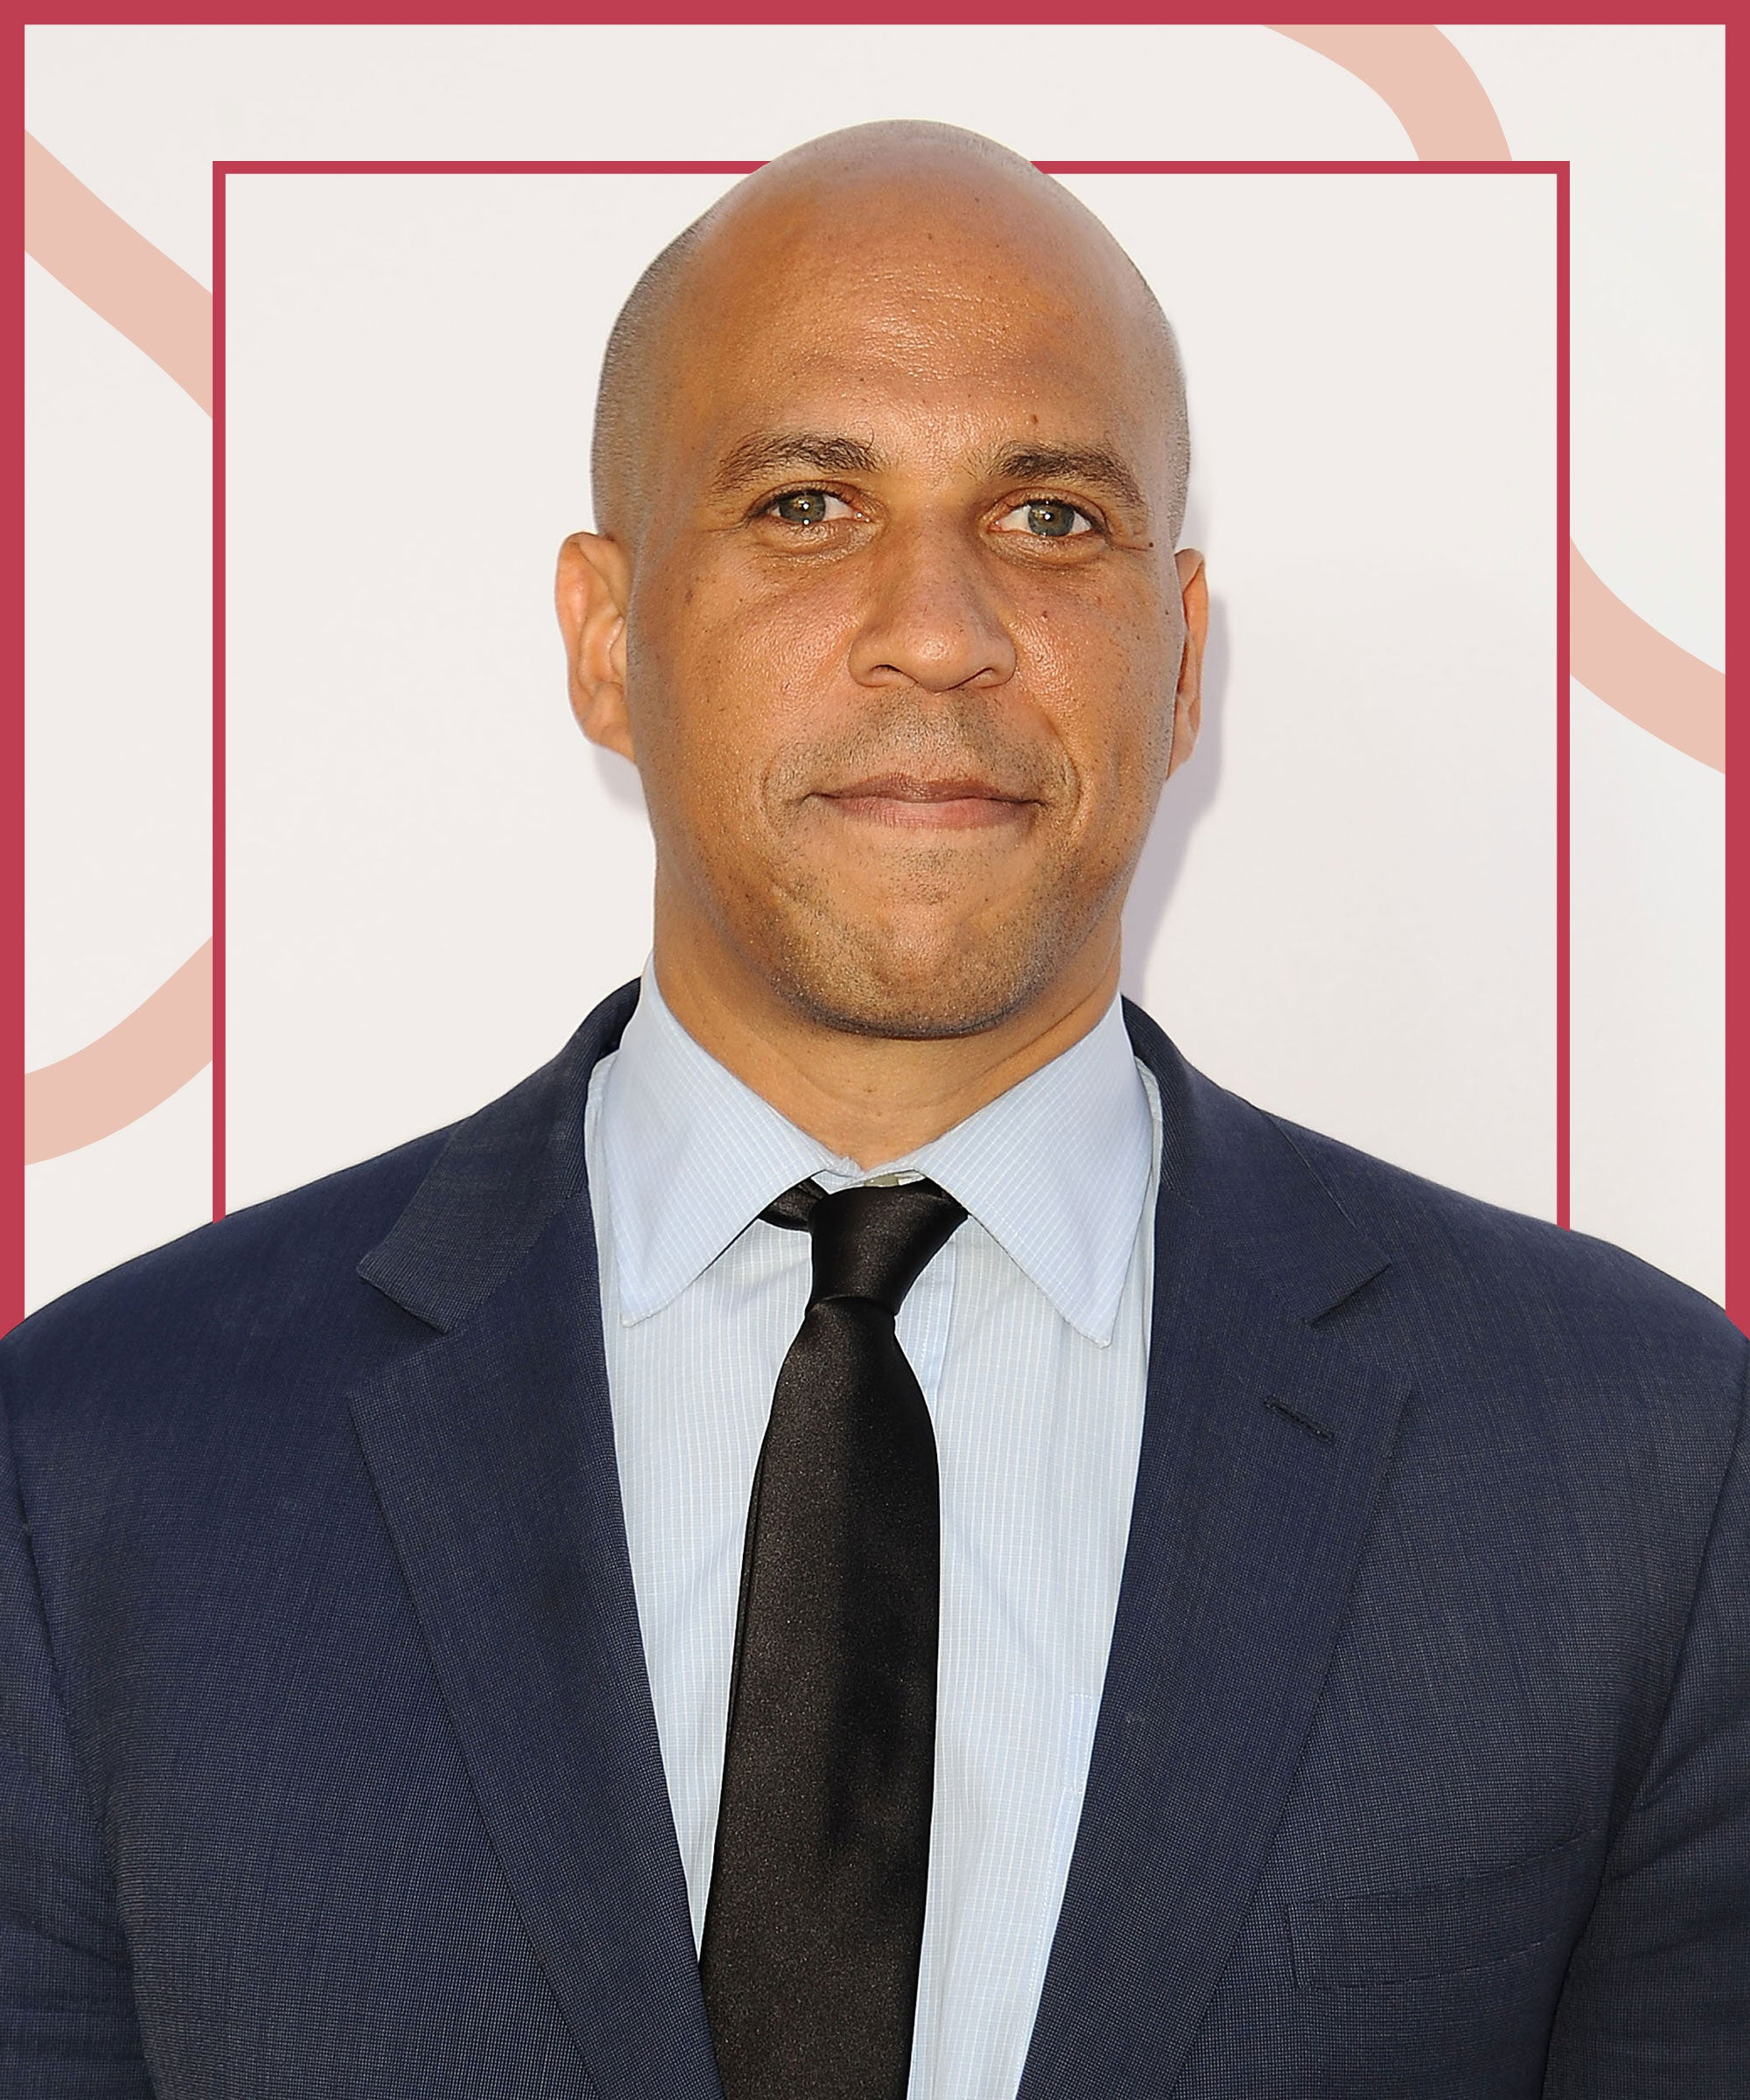 Cory Booker & Rosario Dawson's Relationship Timeline Begins Years Before Anyone Thought